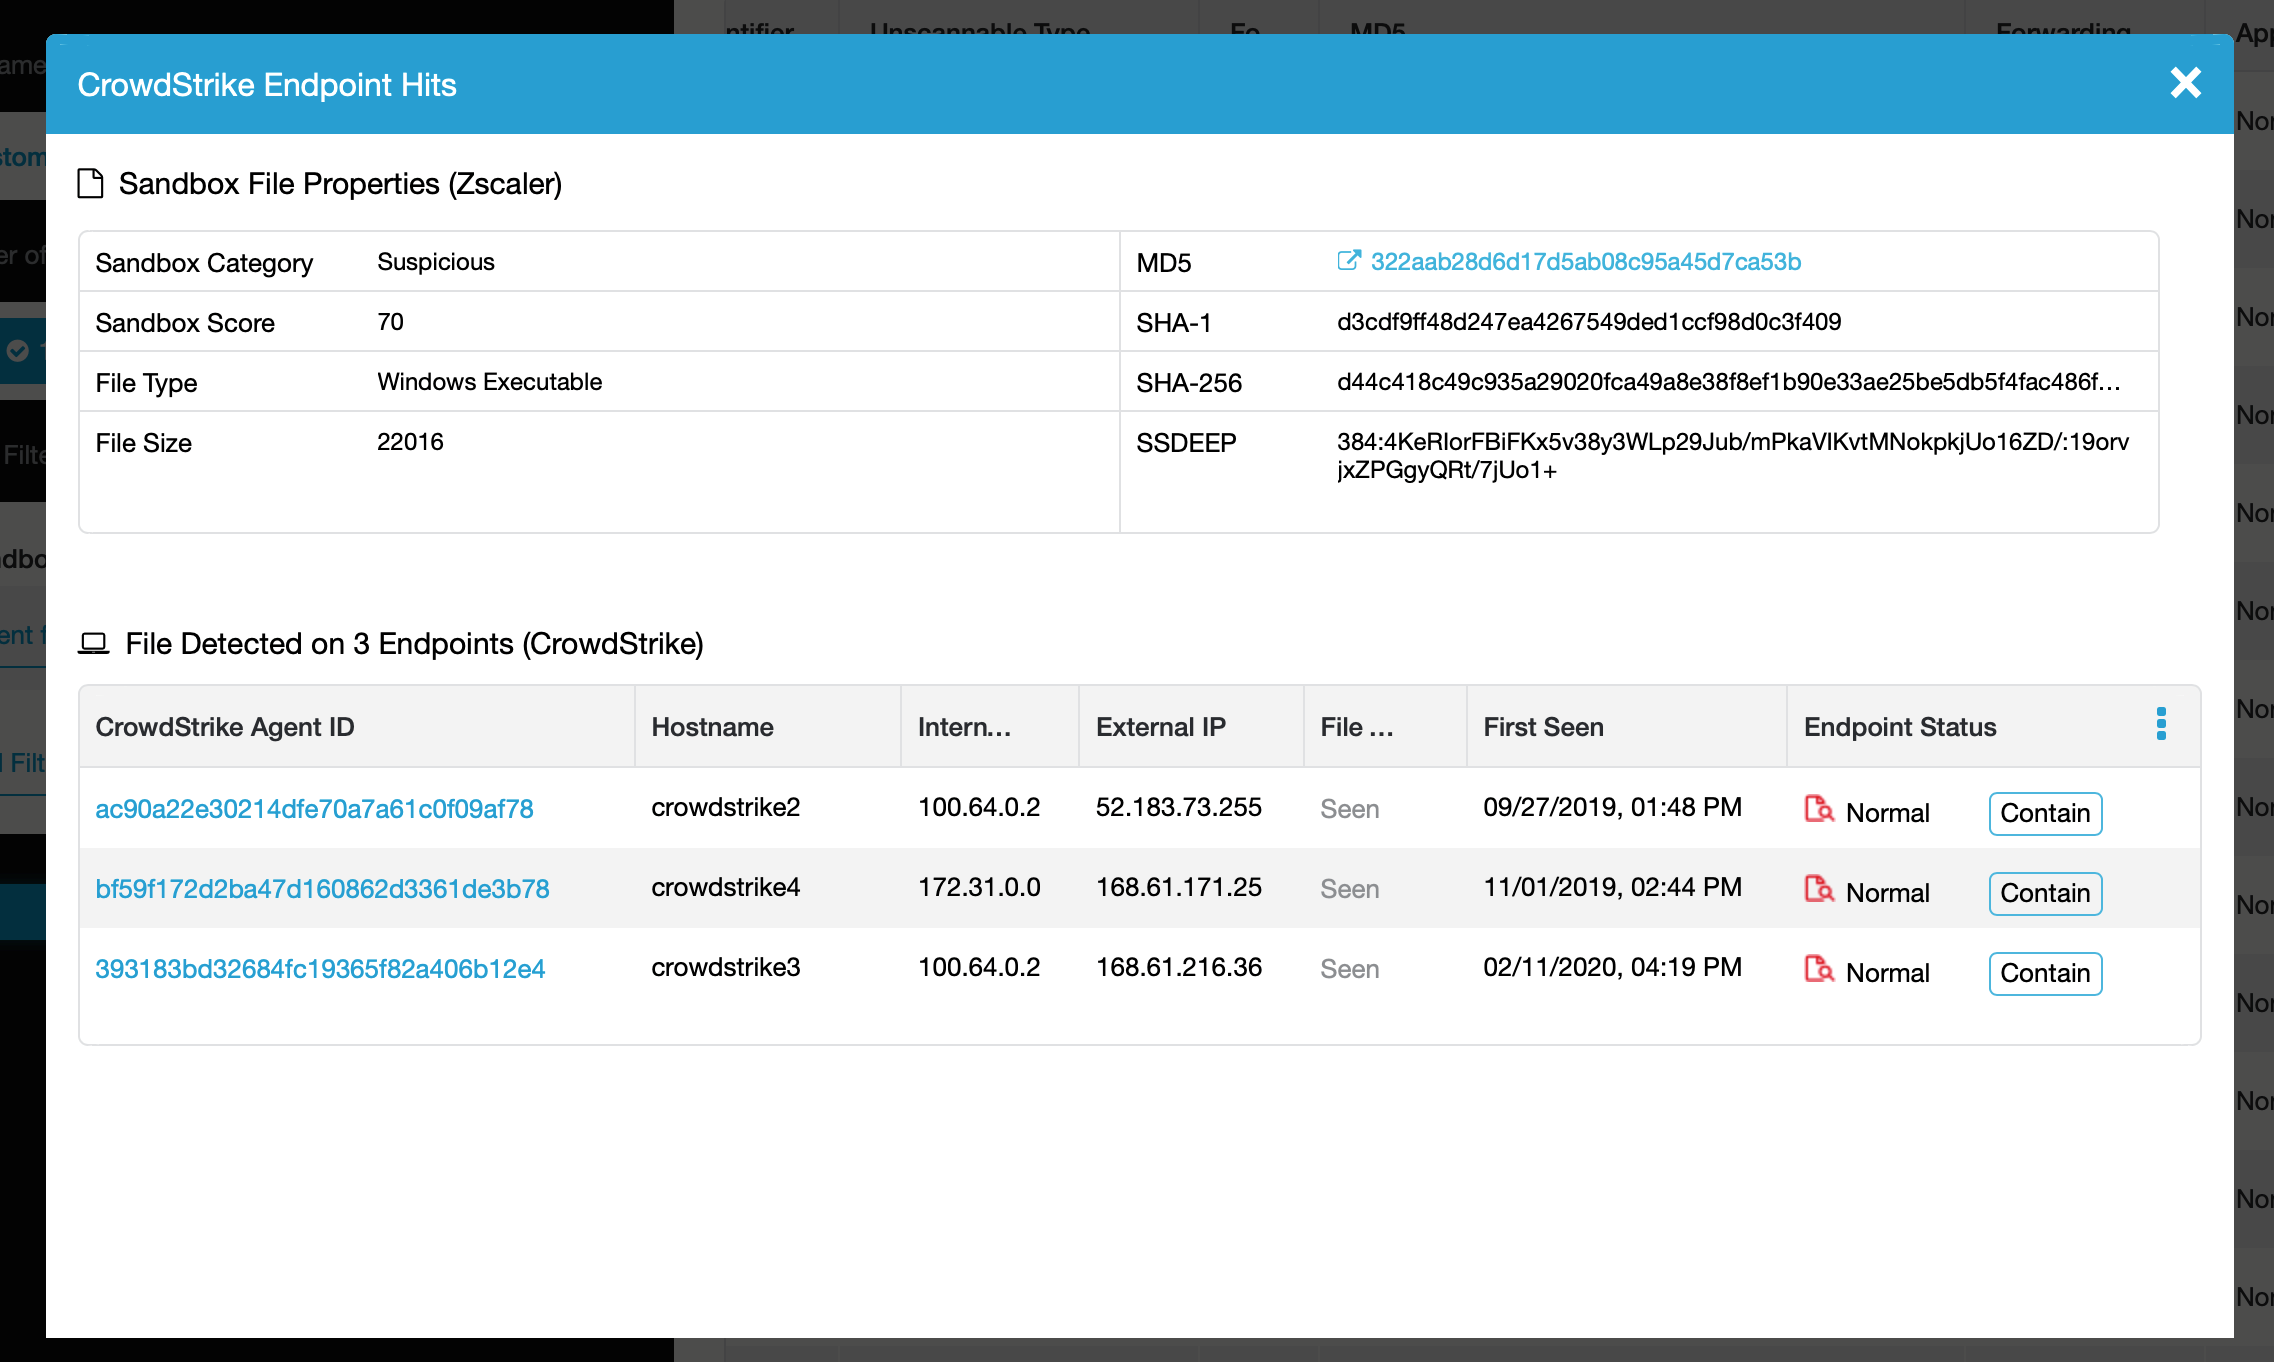 zscaler endpoint 3 hits